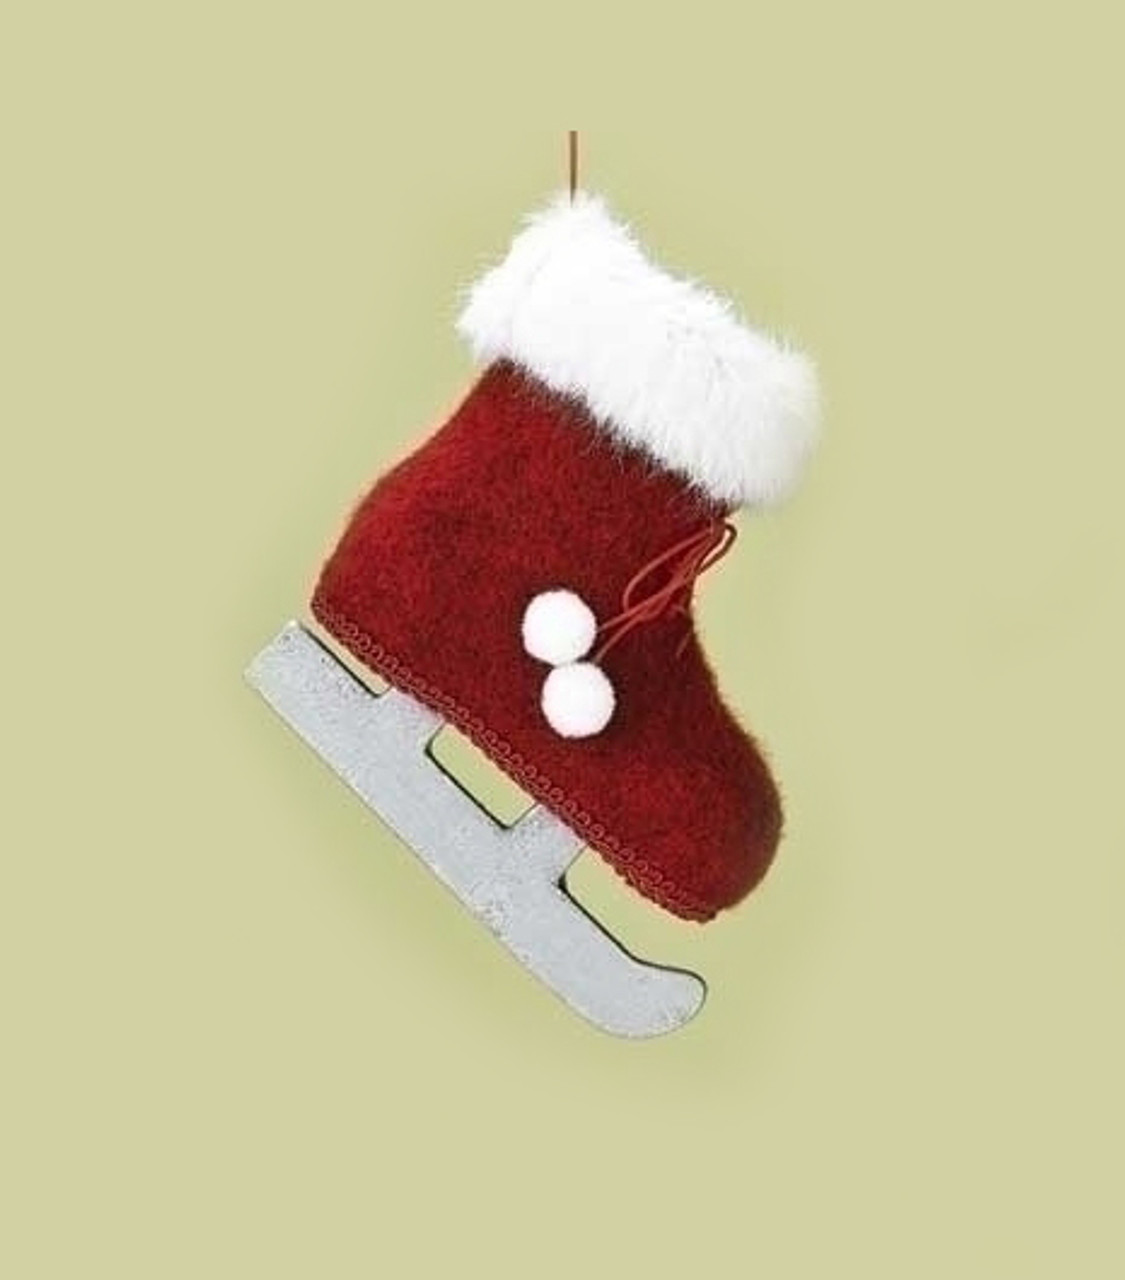 425 country alpine red and white faux fur trimmed ice skate christmas ornament with pom poms 31454762